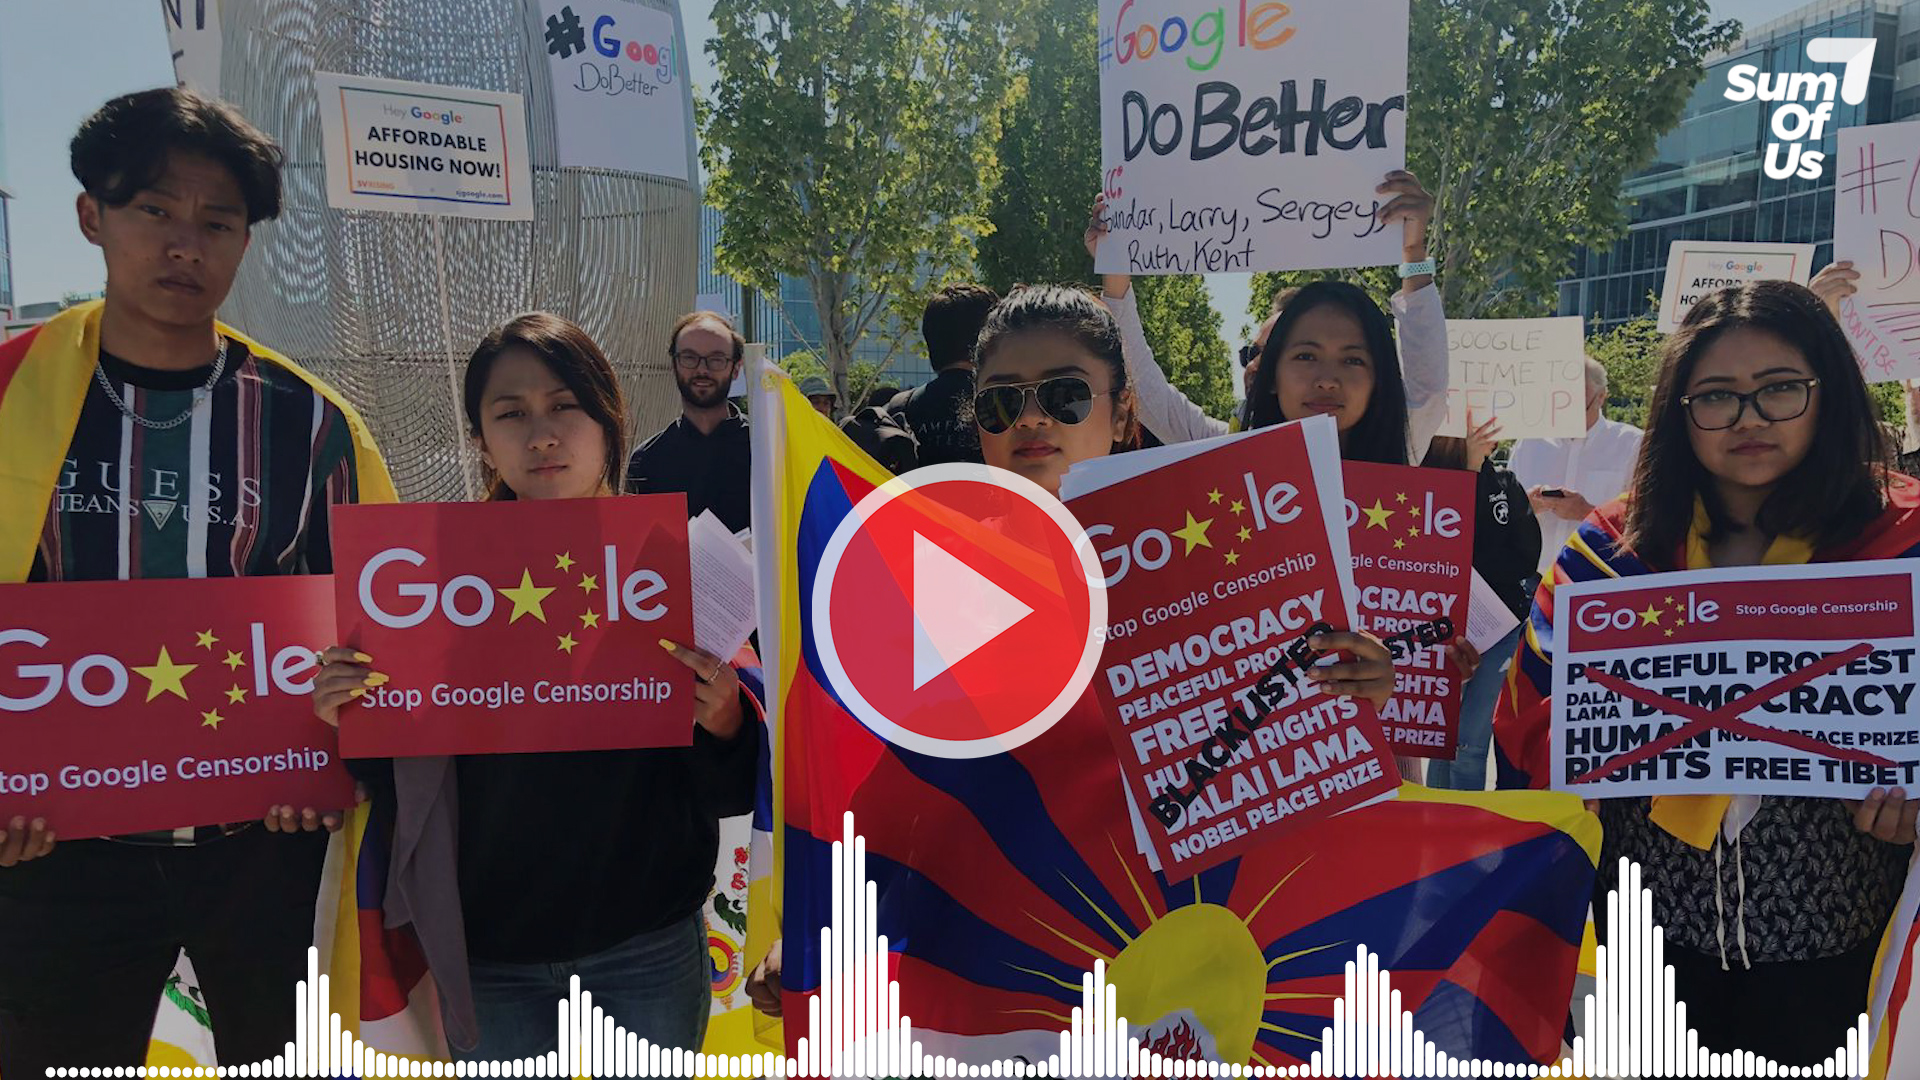 five protesters carrying placards and Tibetan flags overlaid with a play button